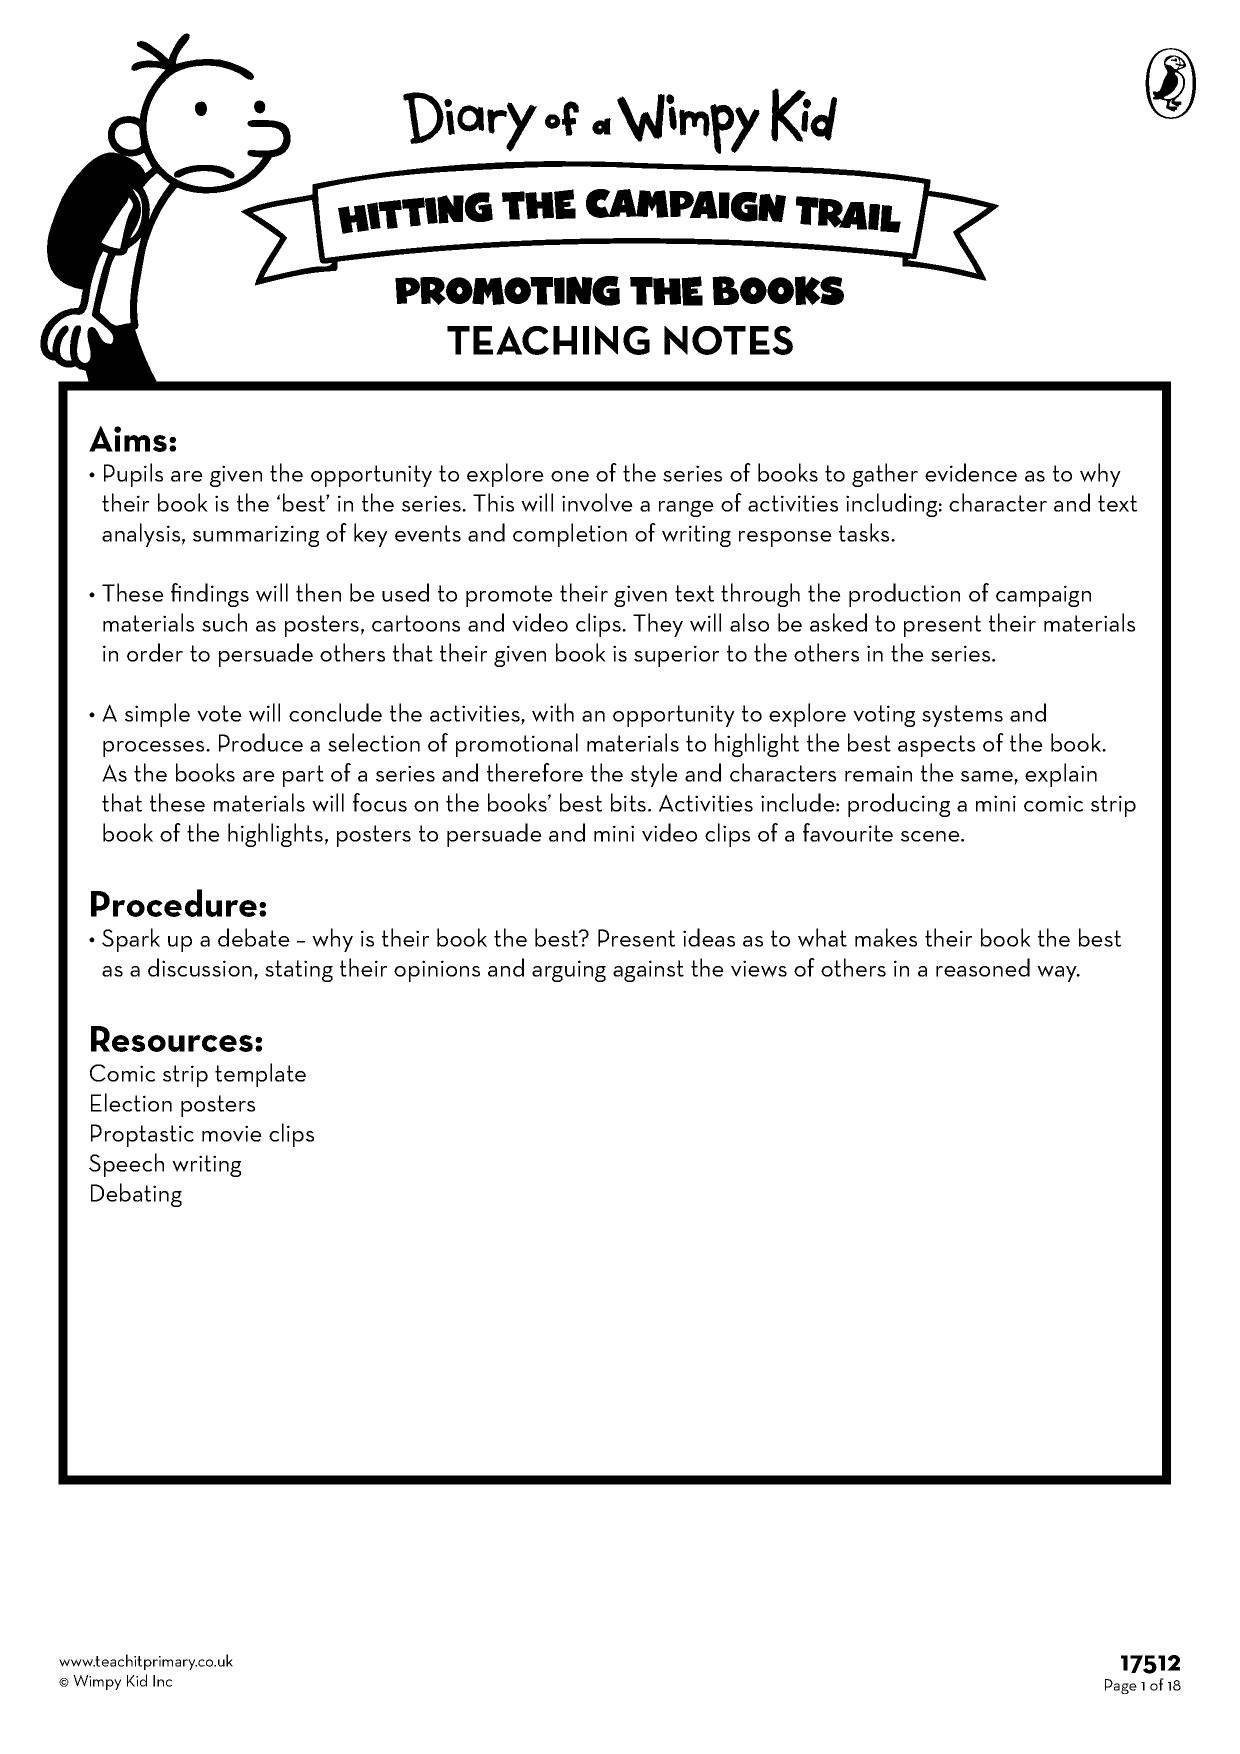 family and wimpy kid essay Free essay: diary of wimpy kid evaluative essay san diego christian college children's literature abstract the diary of a wimpy kid is a book about.